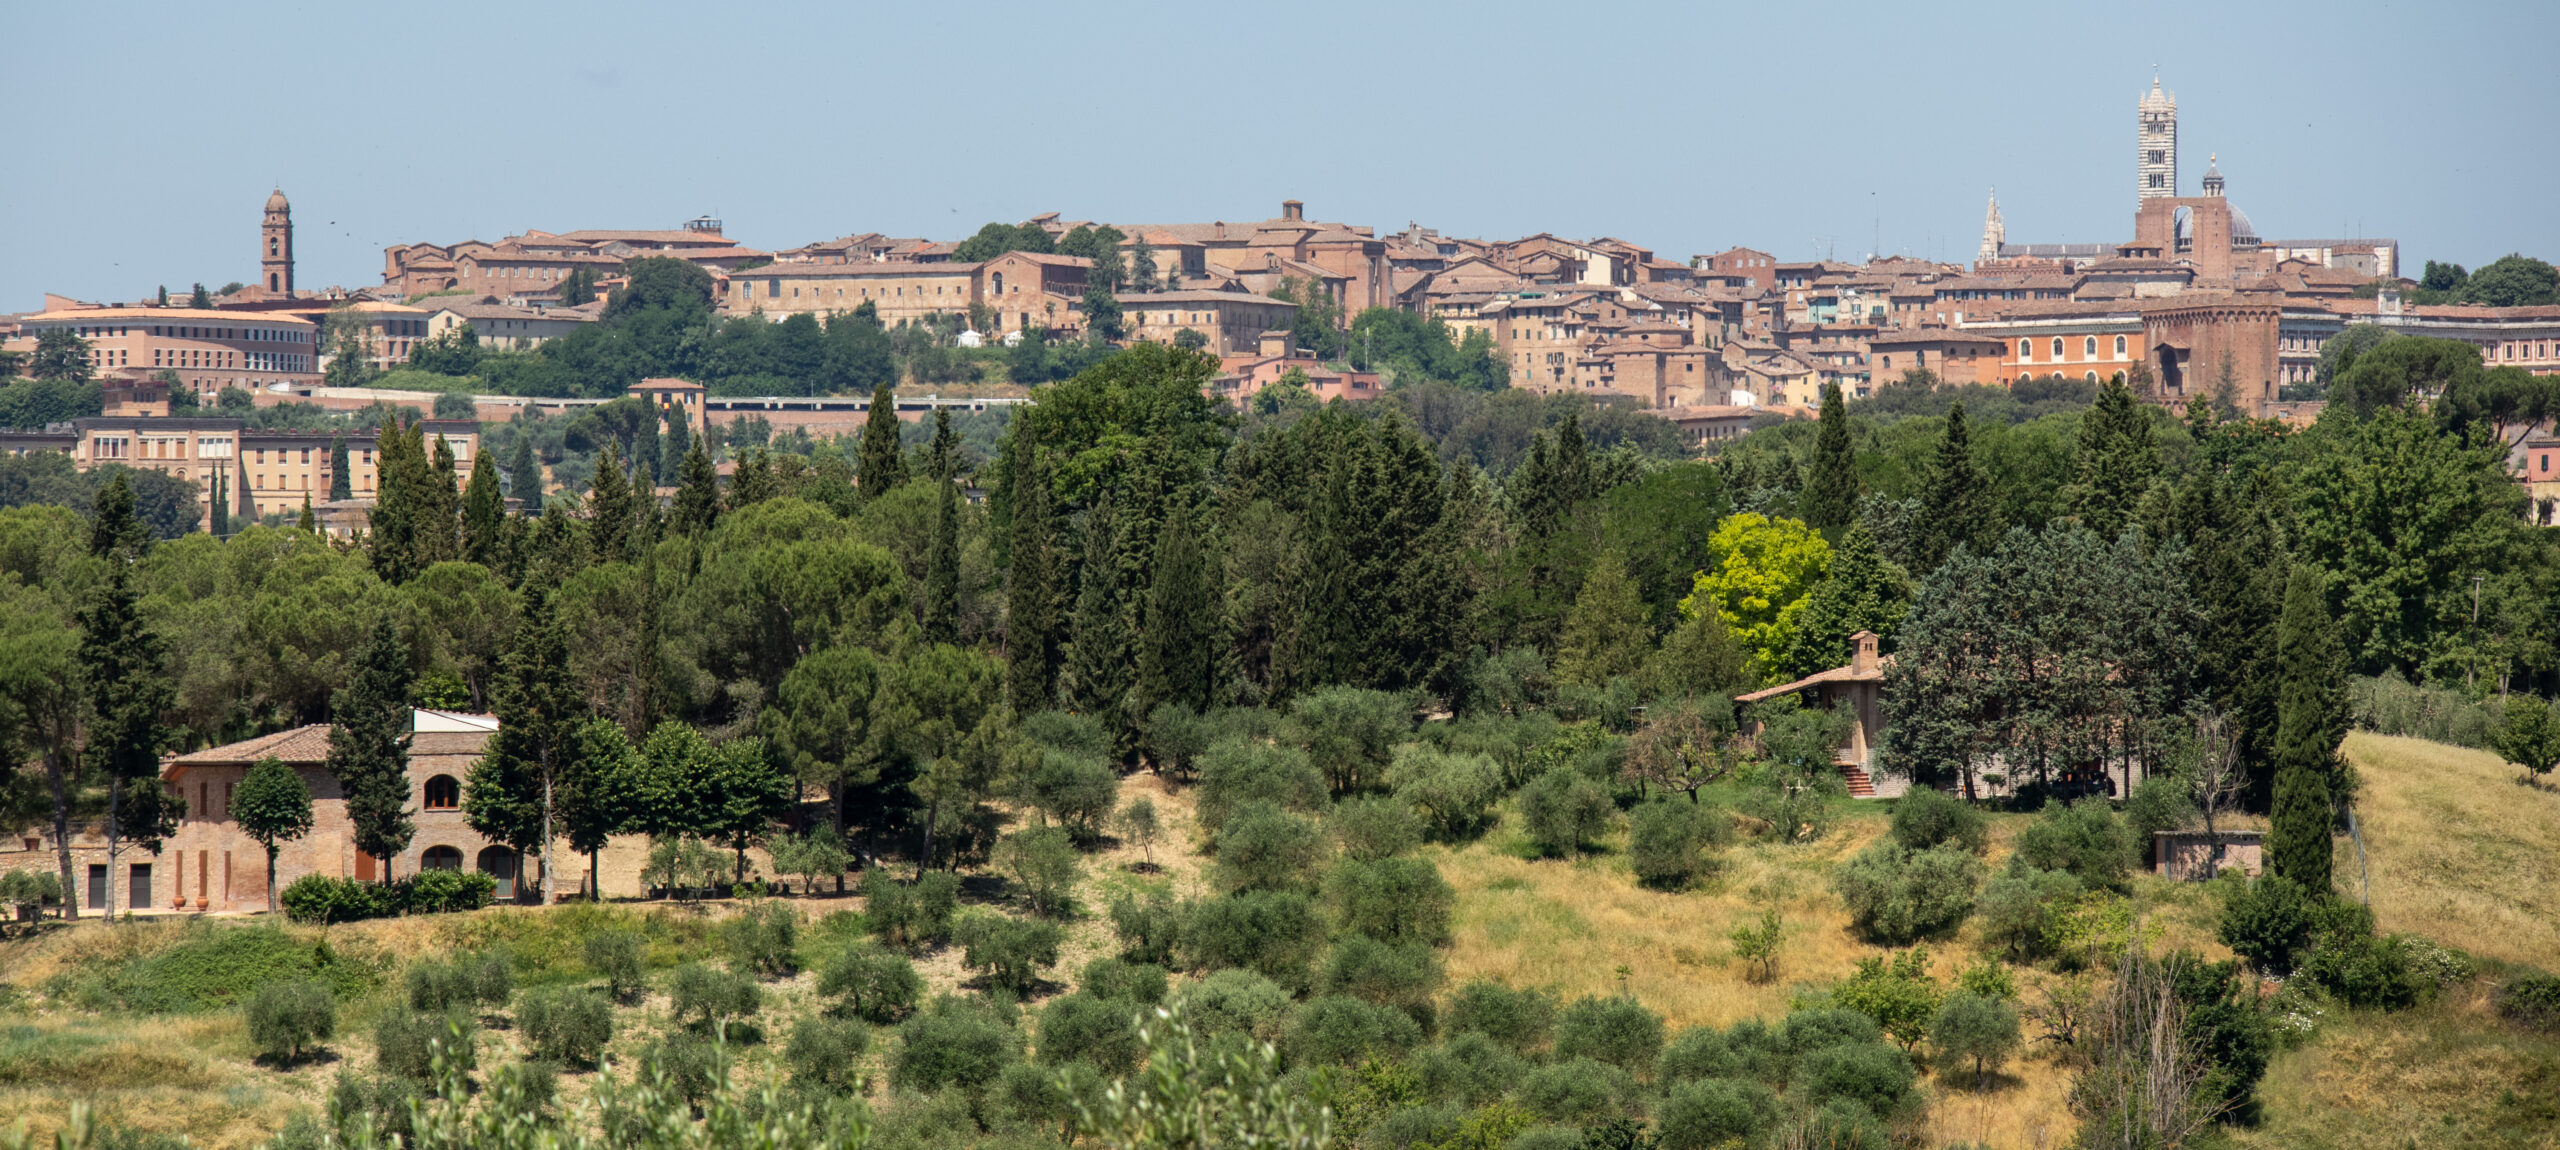 Views of Siena